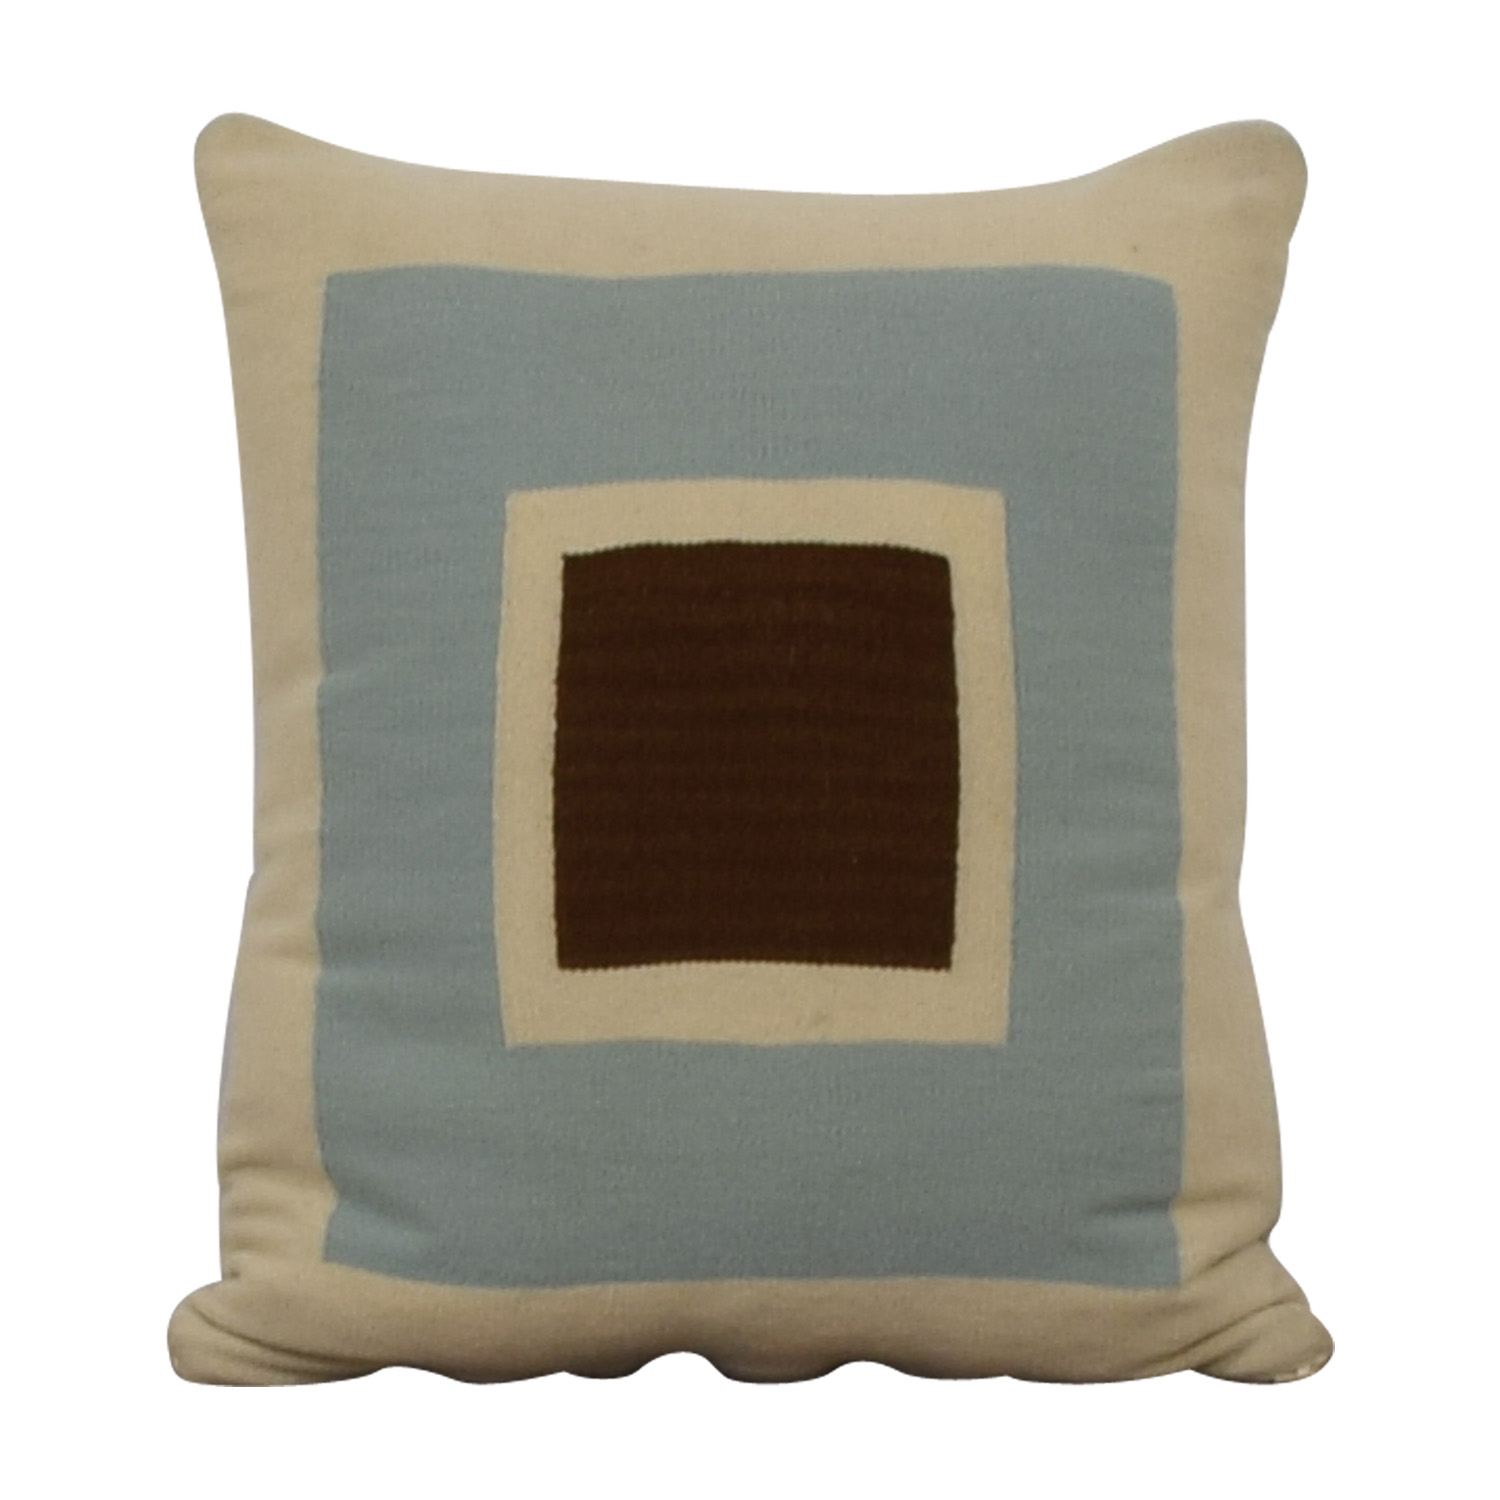 shop Jonathan Adler Jonathan Adler Reversible Beige Brown and Blue Pillow online